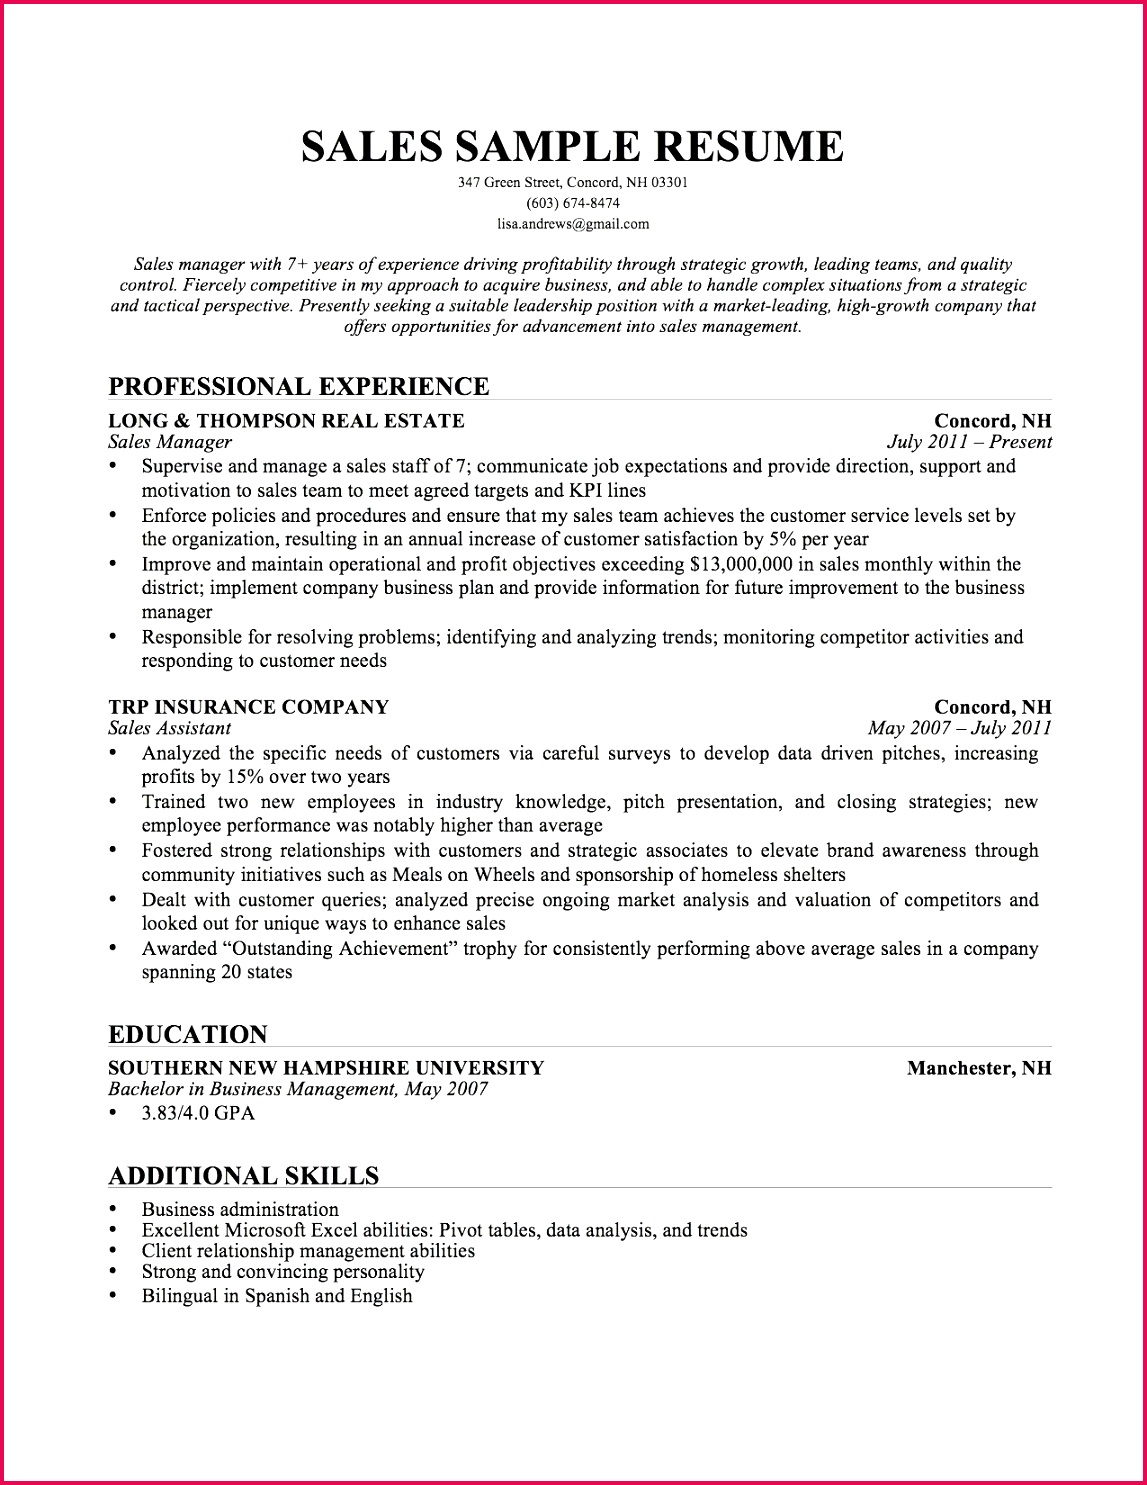 How To Write An Impressive Resume Valid Chef Resume Fresh Chef Resume Samples Awesome Retail Resume 0d